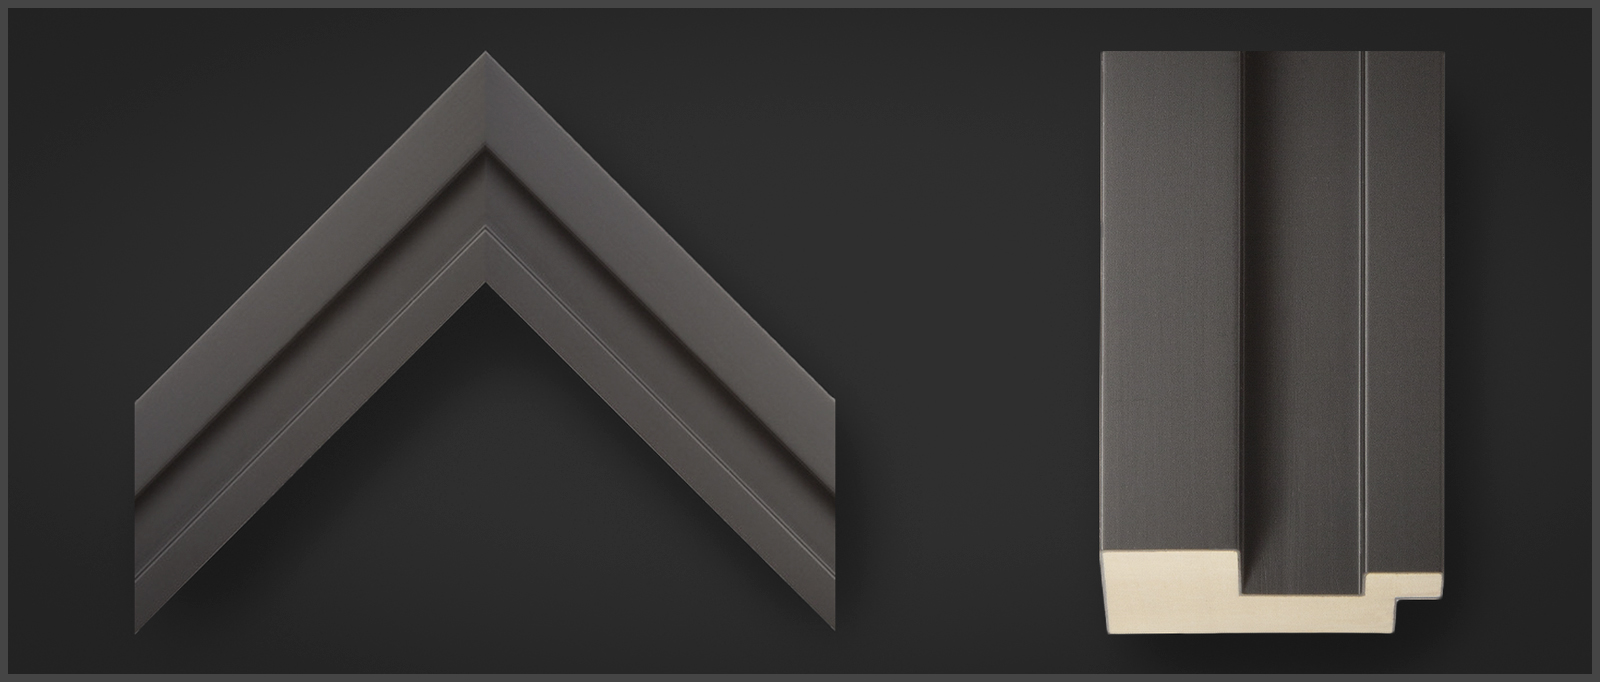 Corner sample of an Omega Edge Matte Black wooden picture frame, stock #84178.